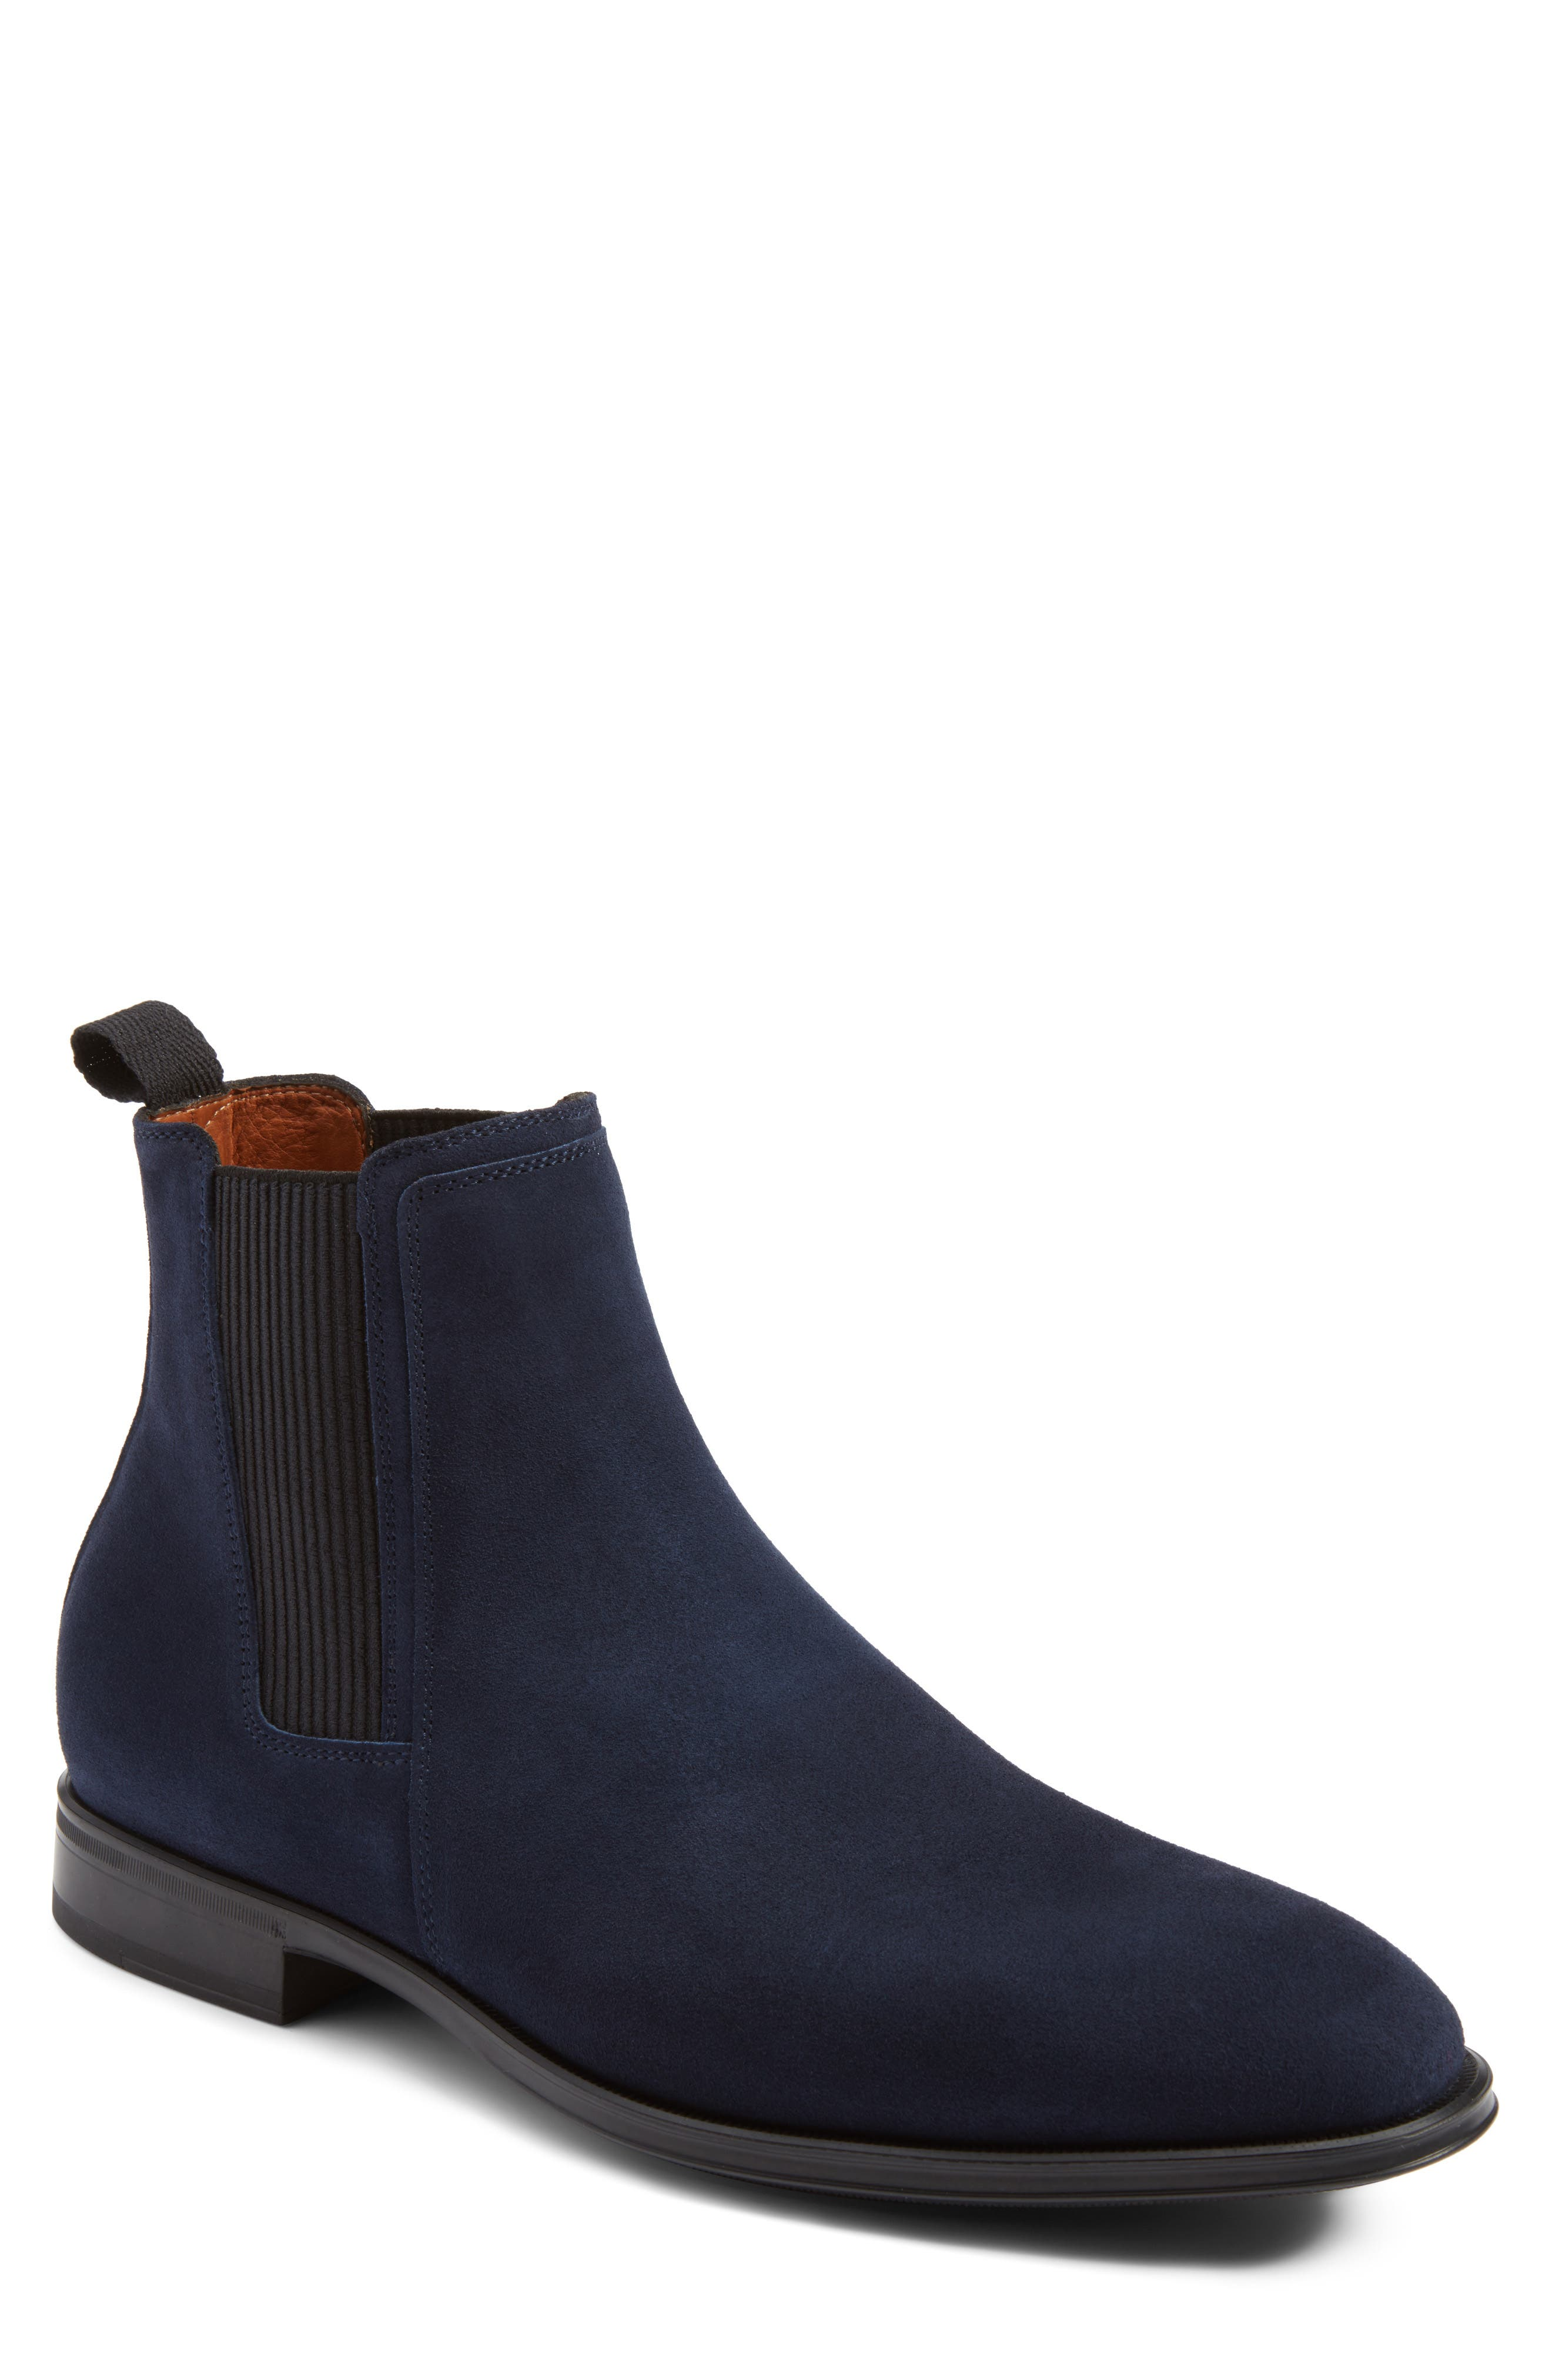 Damon Chelsea Boot,                             Main thumbnail 1, color,                             Navy Suede